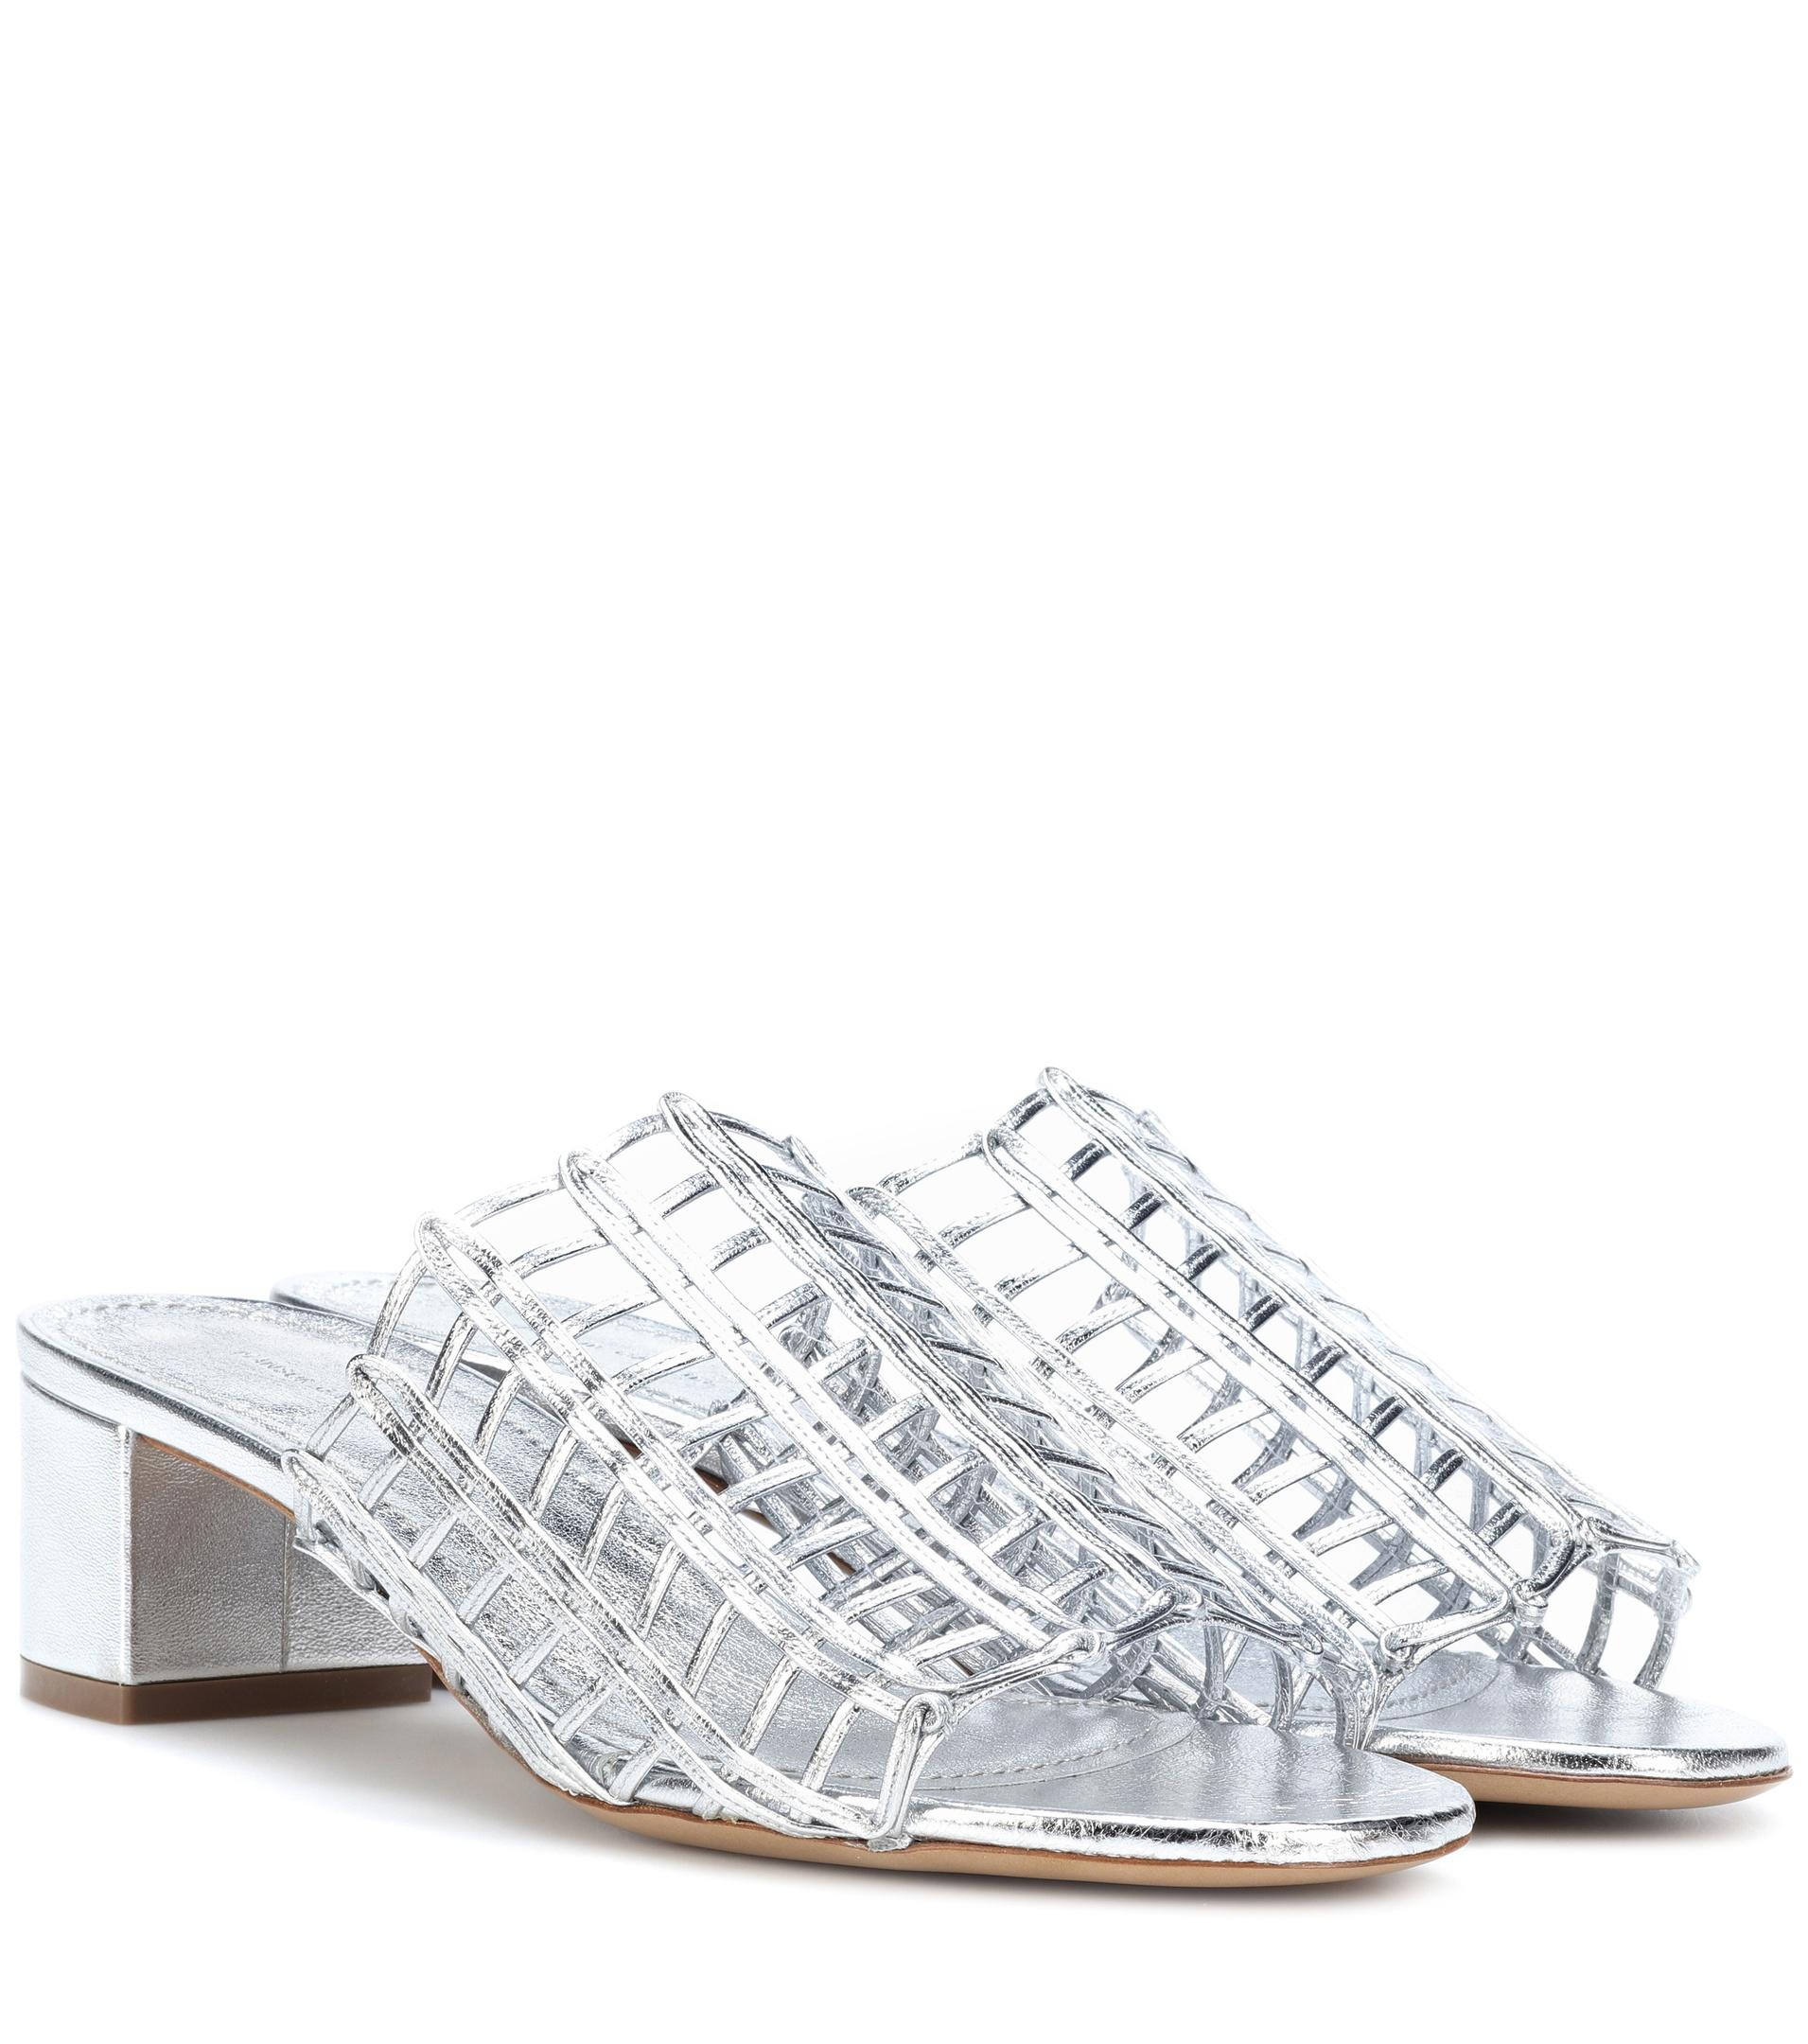 Grid metallic leather sandals Mansur Gavriel 6jjRqB55